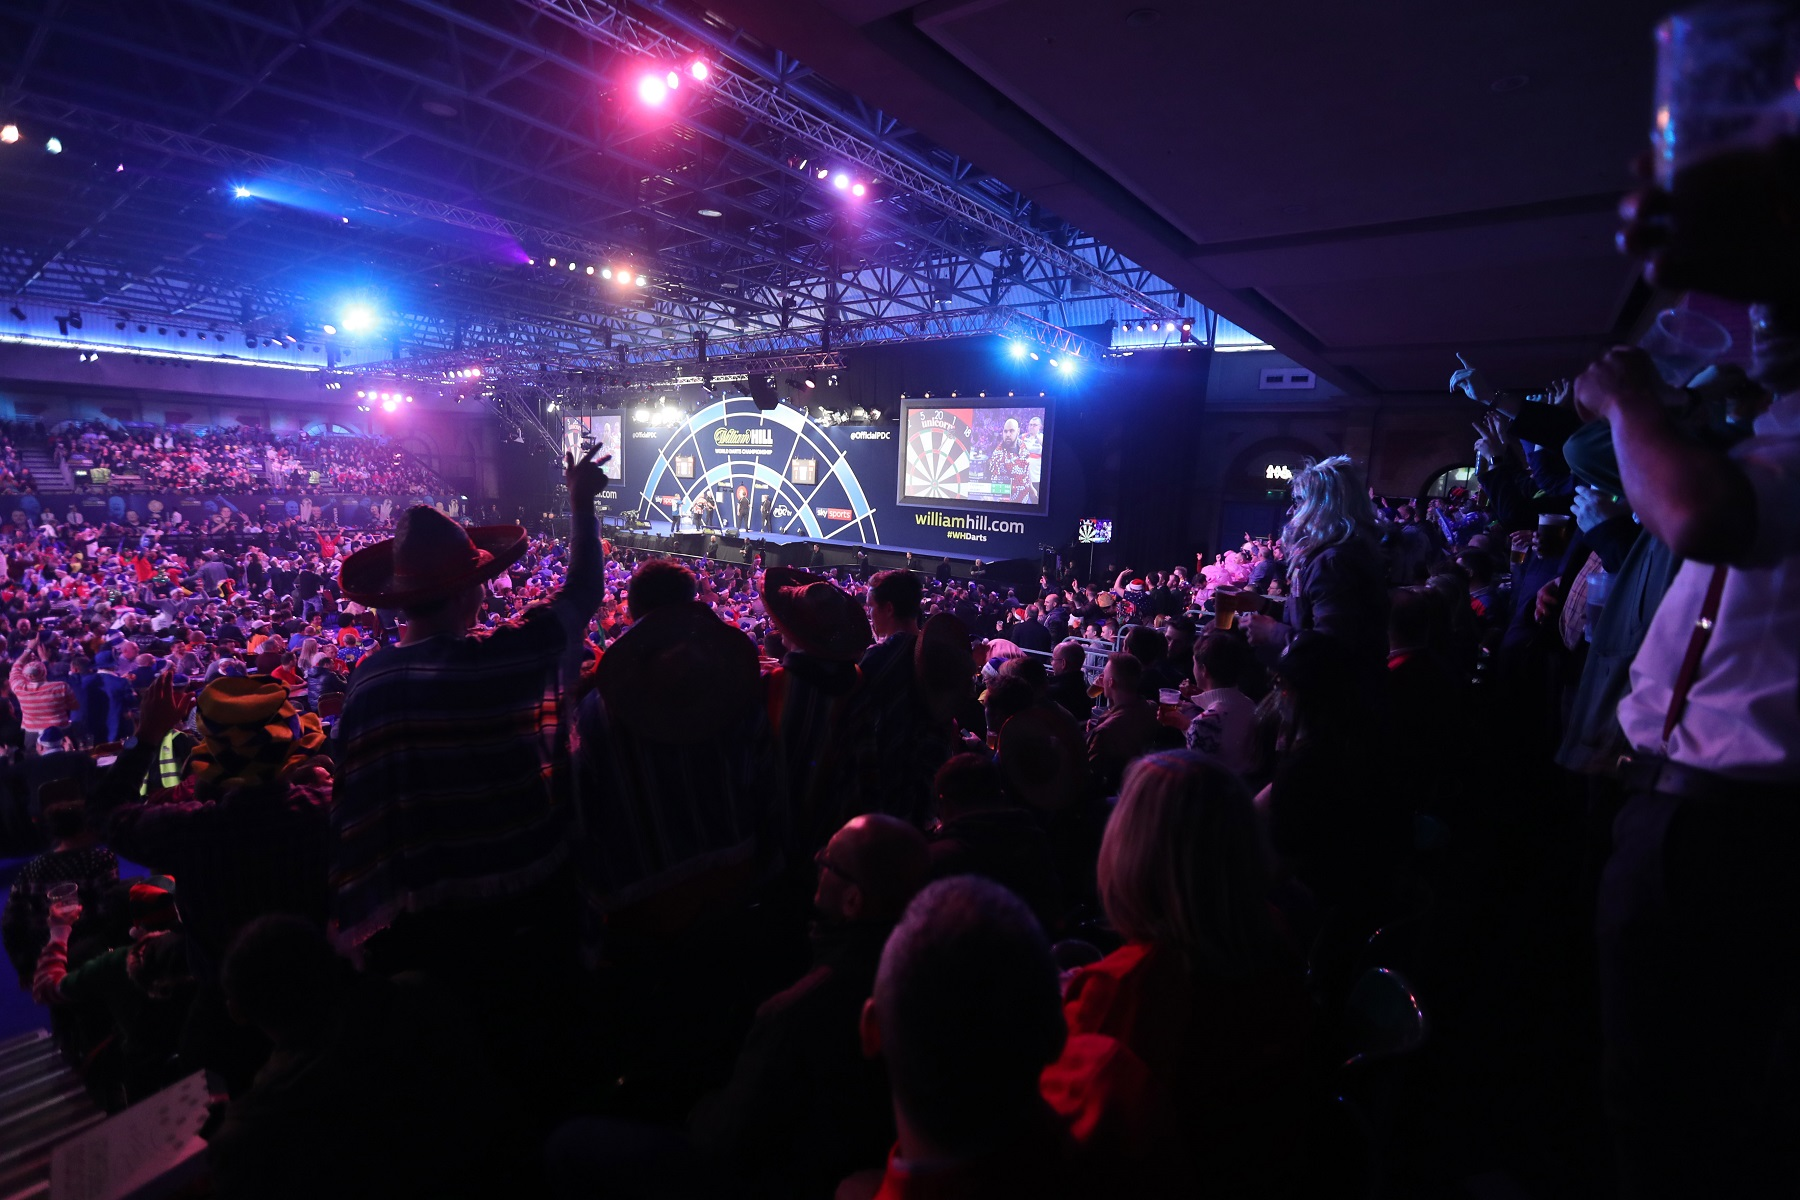 WILLIAM HILL WORLD DARTS CHAMPIONSHIP 2018 ALEXANDRA PALACE,LONDON PIC;LAWRENCE LUSTIG ROUND 1 KYLE ANDERSON V PETER JACQUES GENERAL VIEW IN ACTION